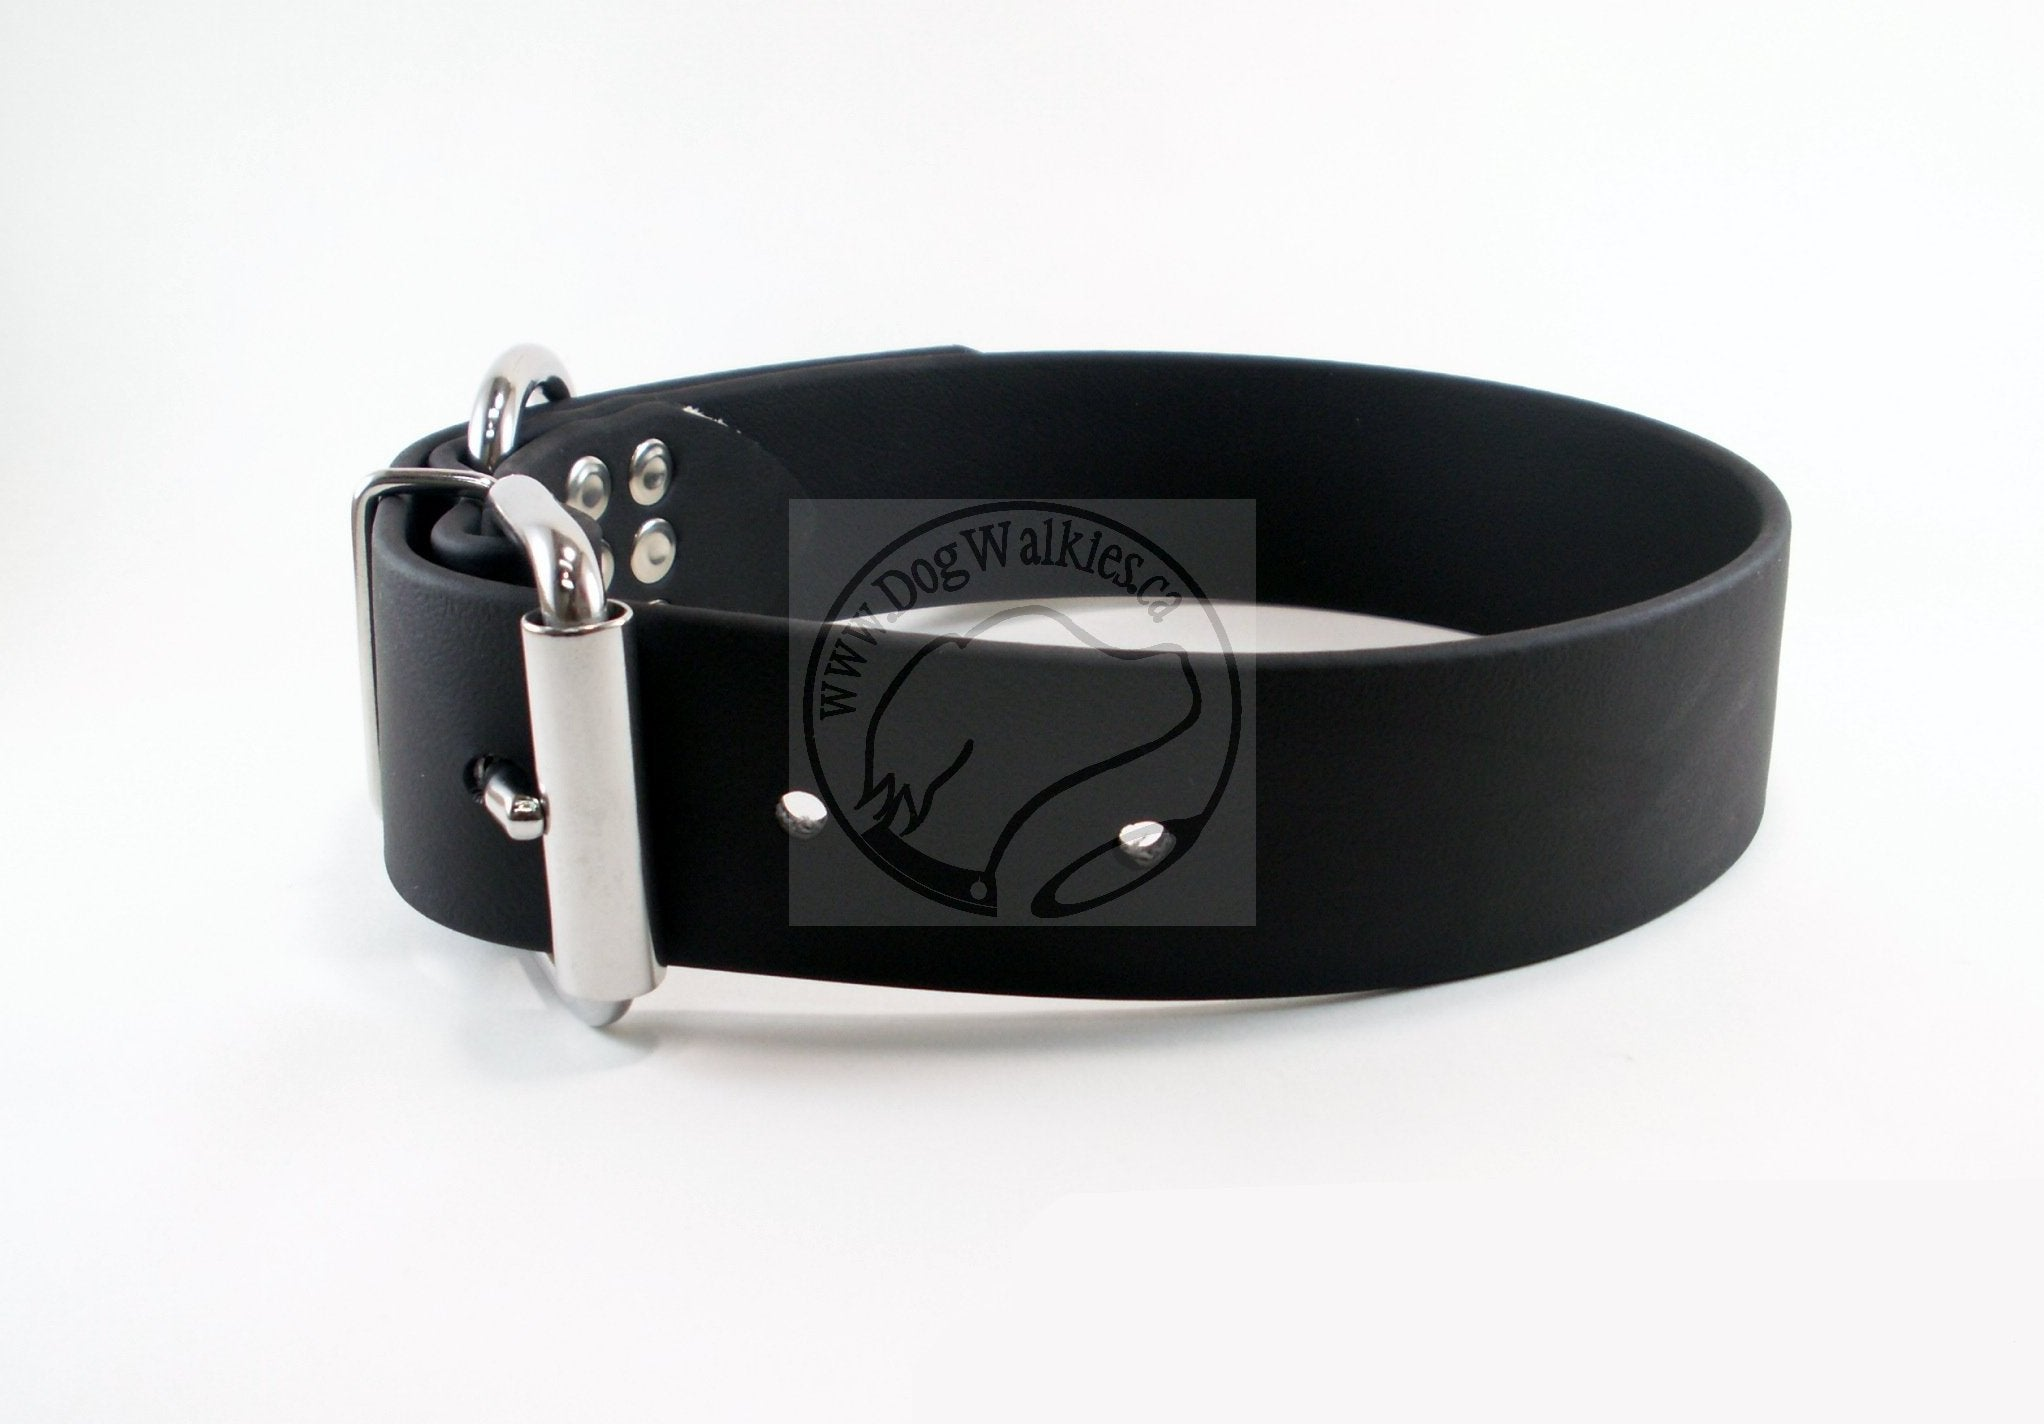 Jet Black Biothane Dog Collar - Extra Wide - 1.5 inch (38mm) wide